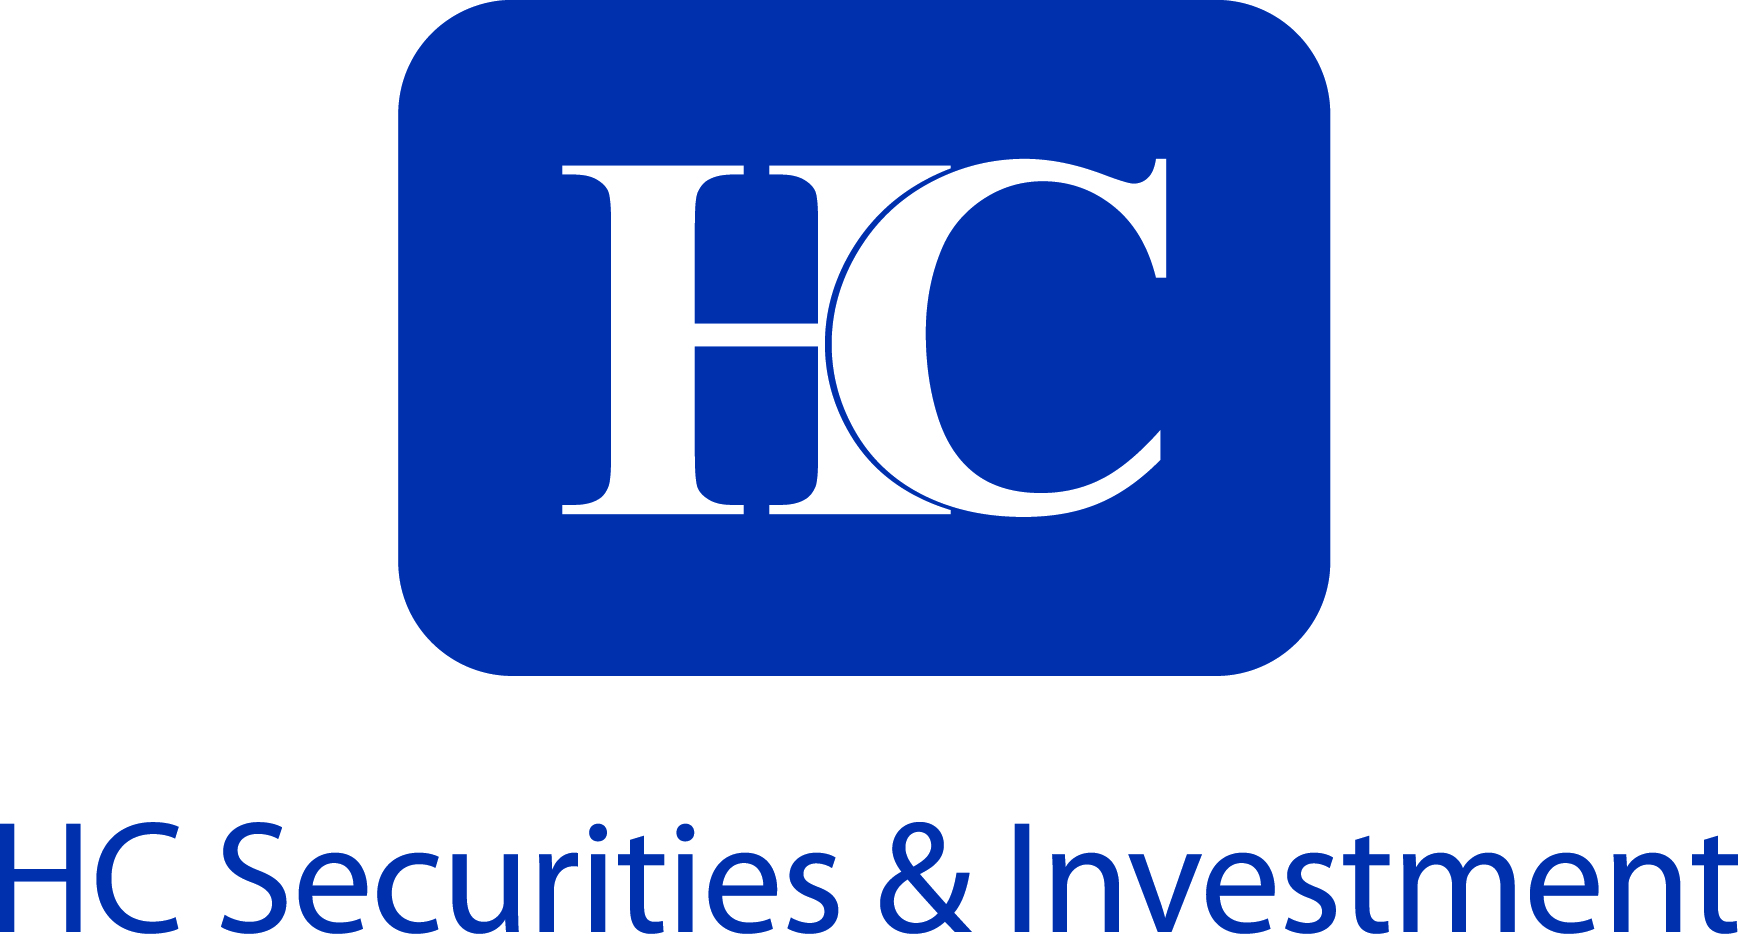 HC Securities & Investment logo